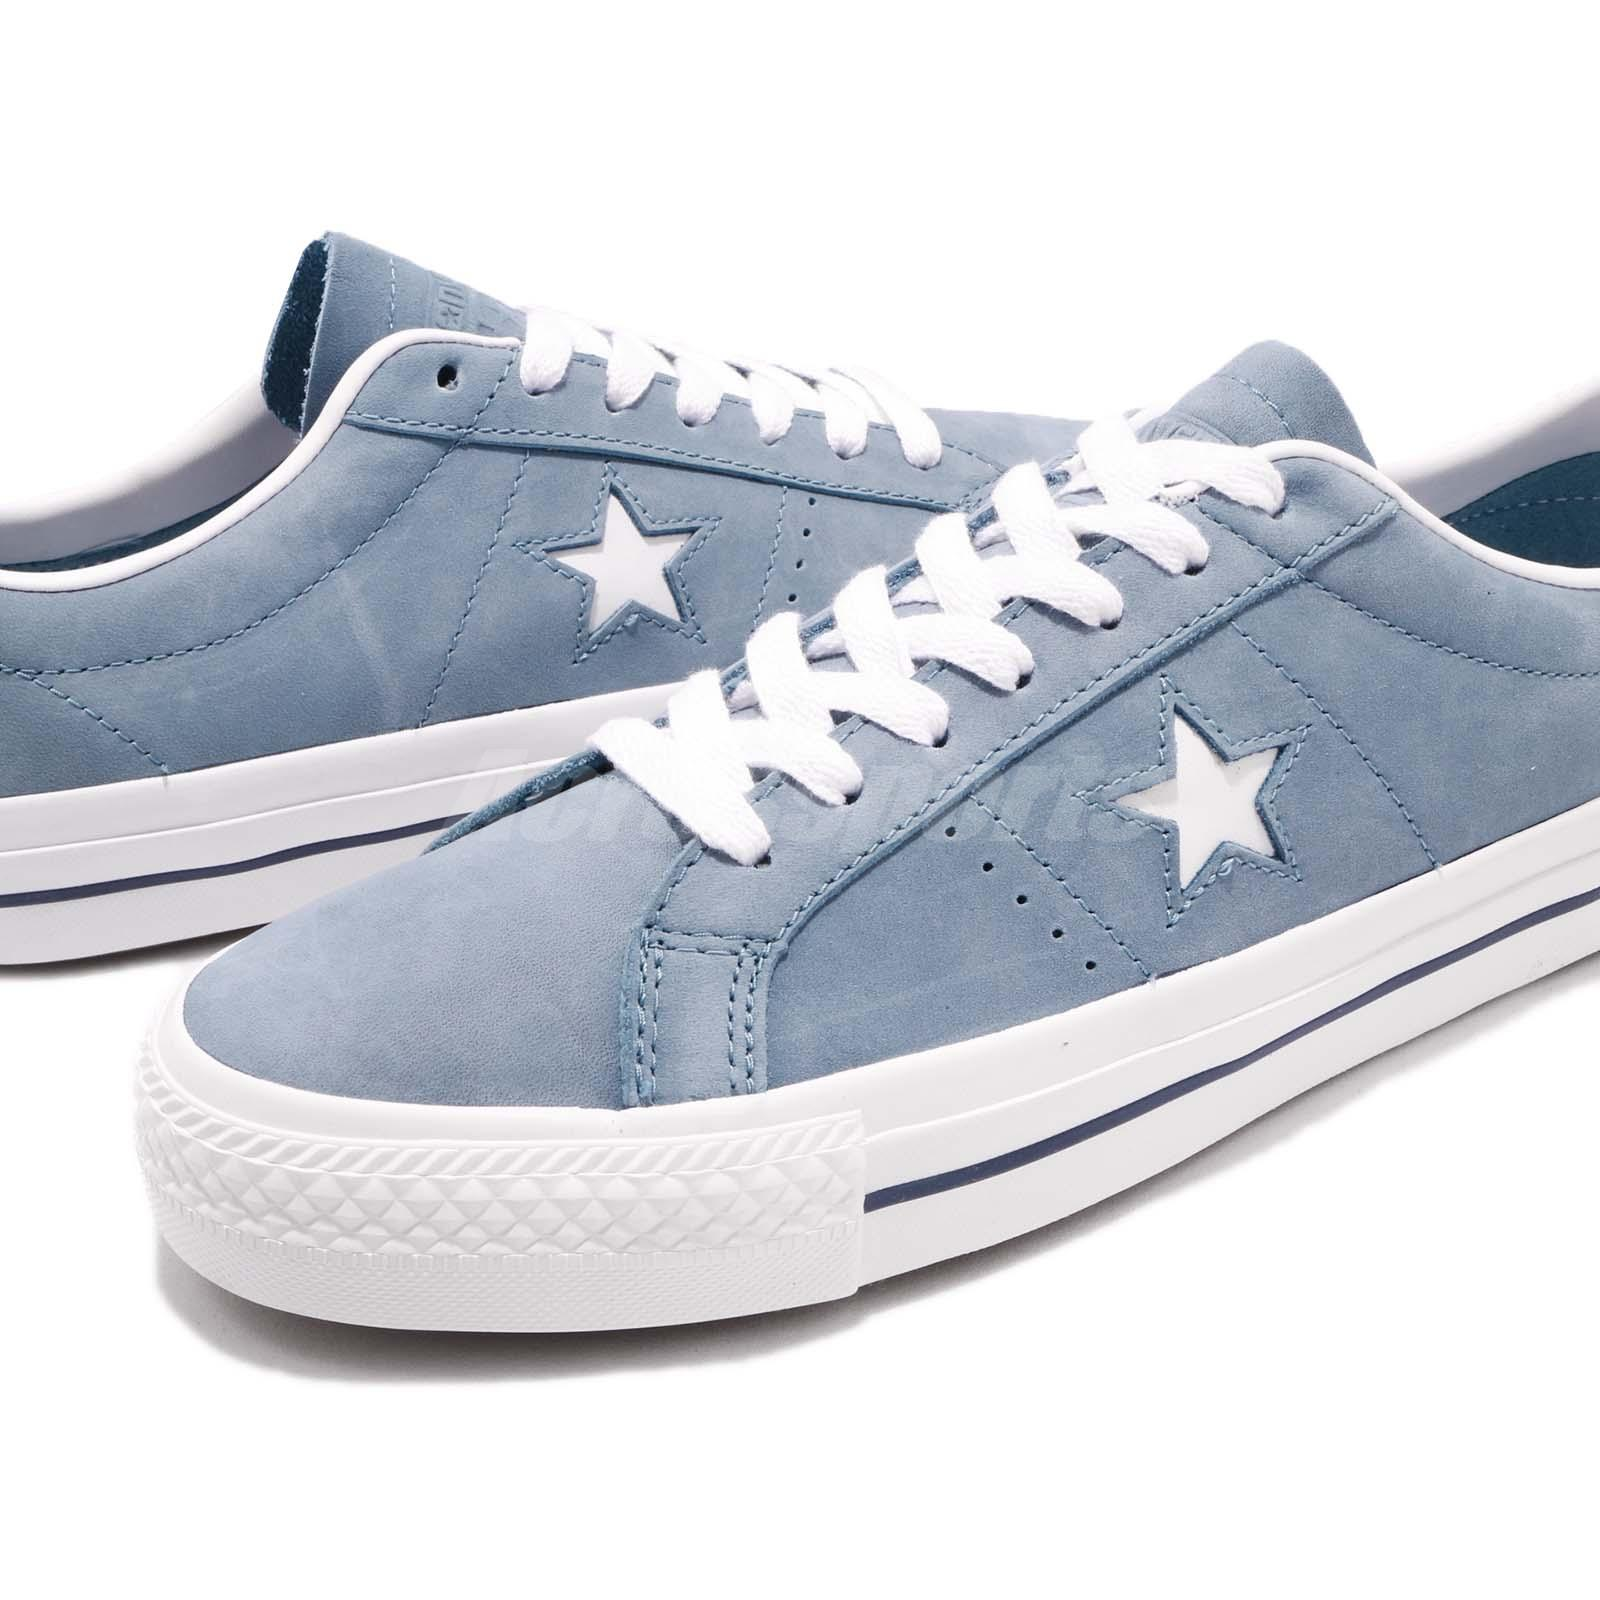 Converse One Star Pro Blue White Men Casual Classic Shoes Sneakers 160537C